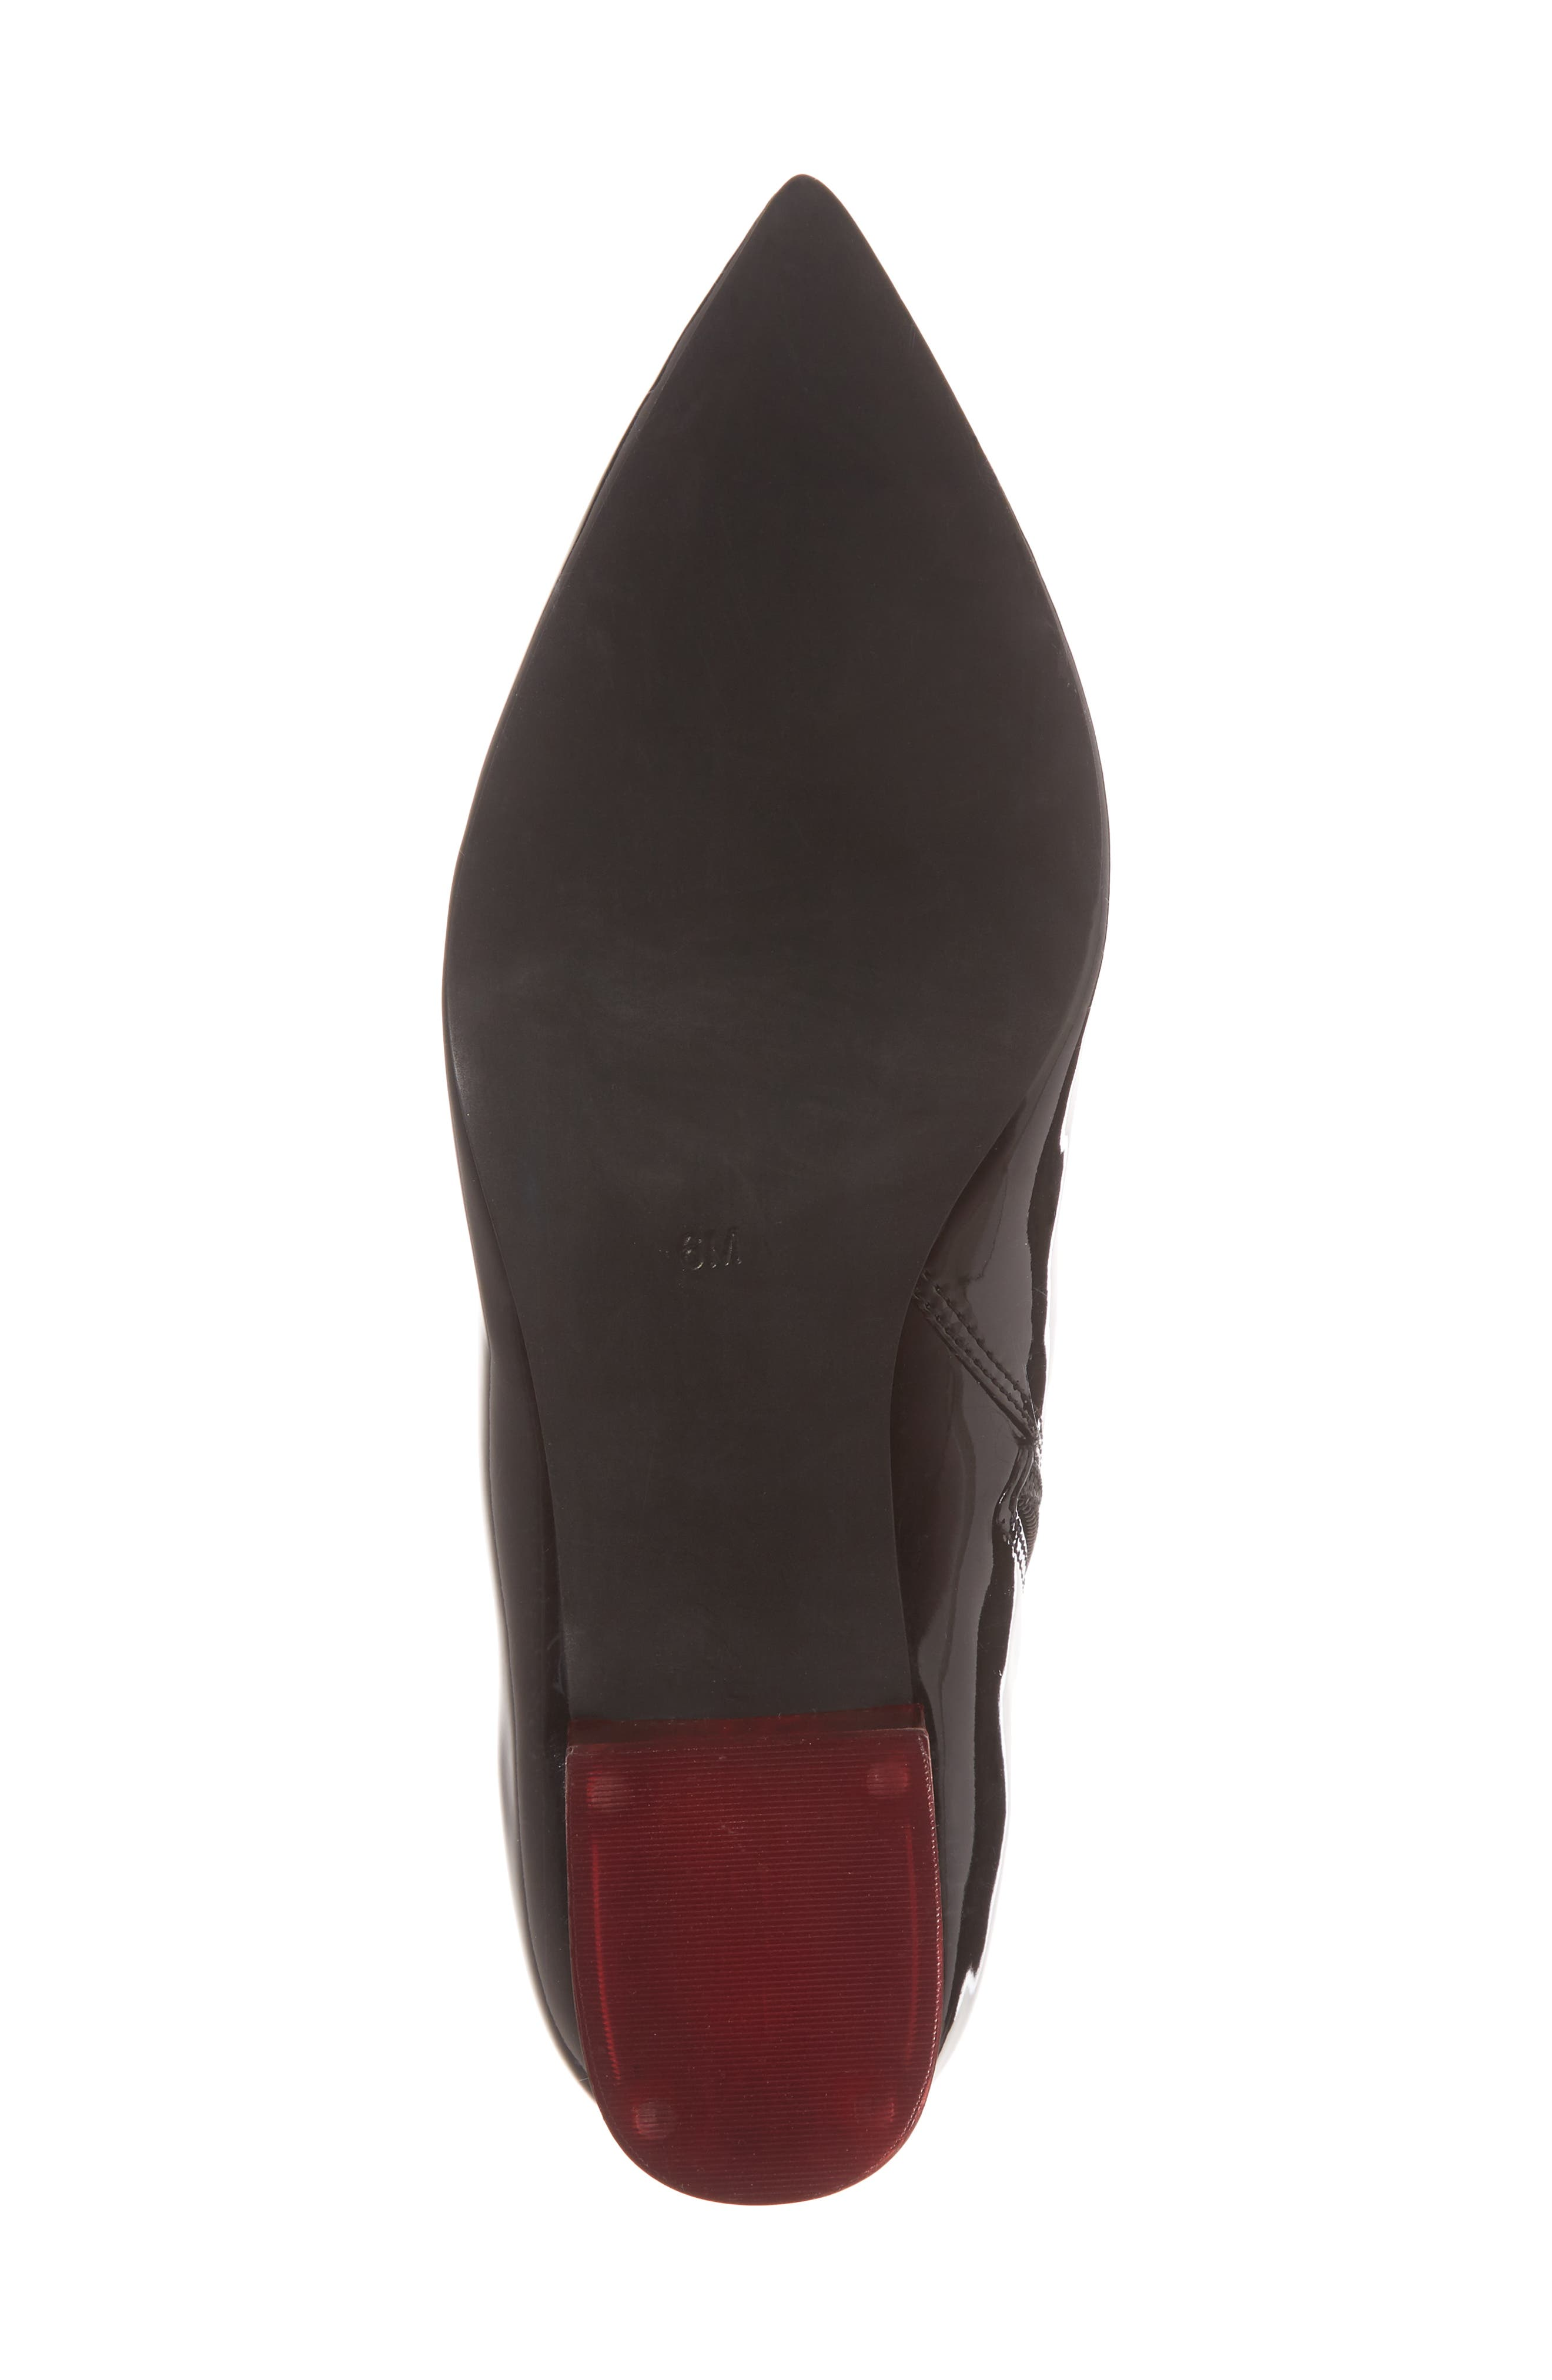 Luminous Statement Heel Bootie,                             Alternate thumbnail 6, color,                             Black/ Red Patent Leather